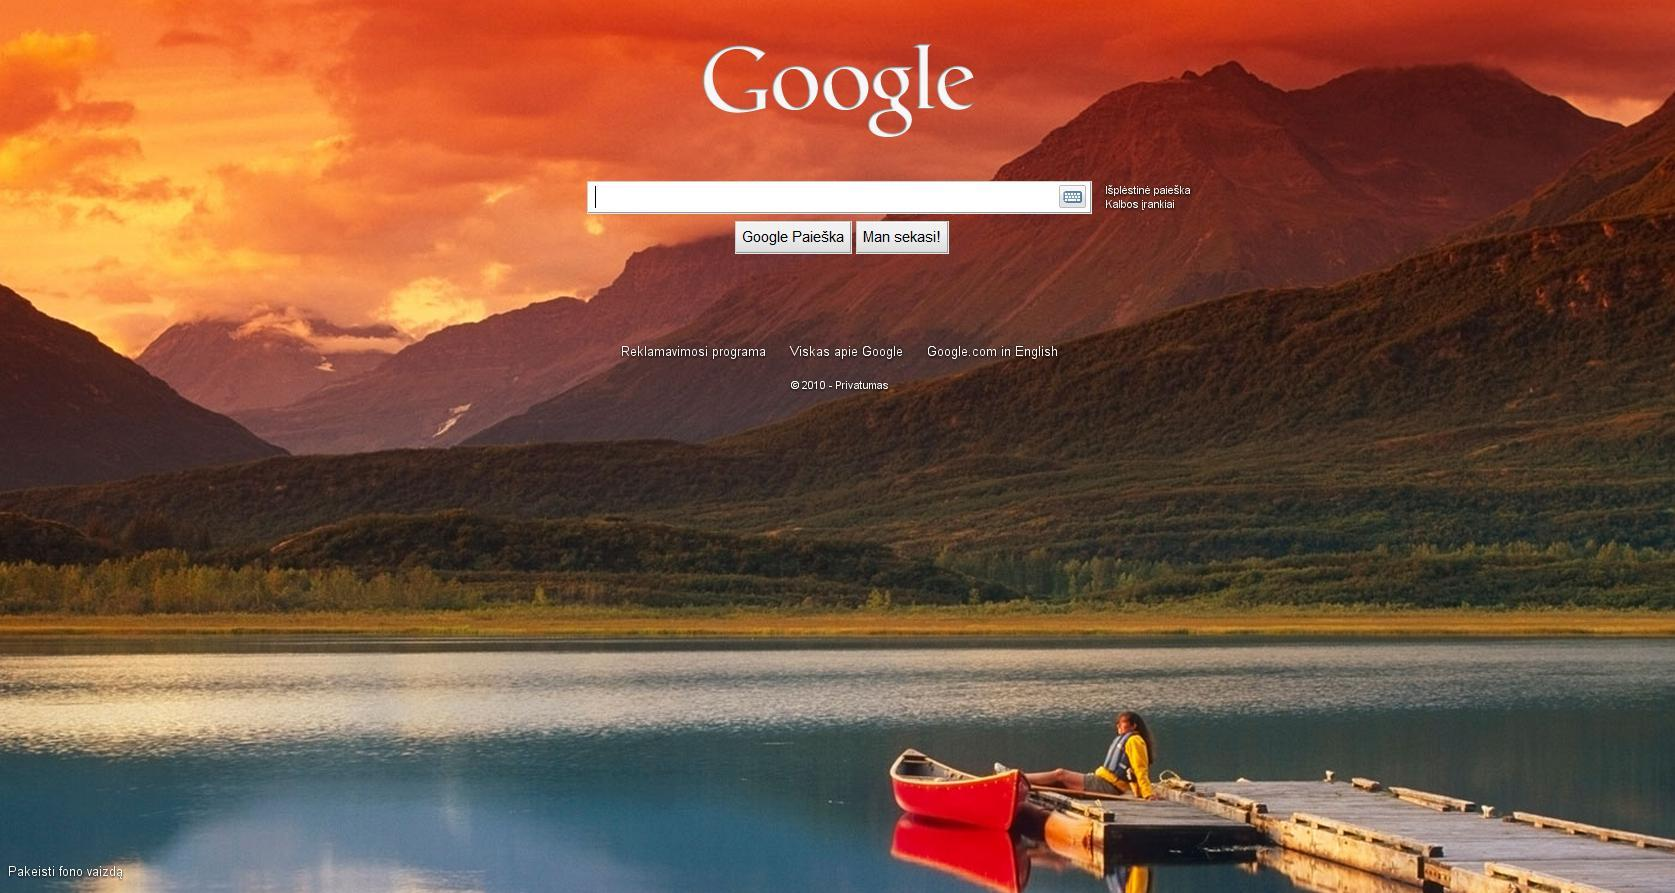 how to change the google wallpaper